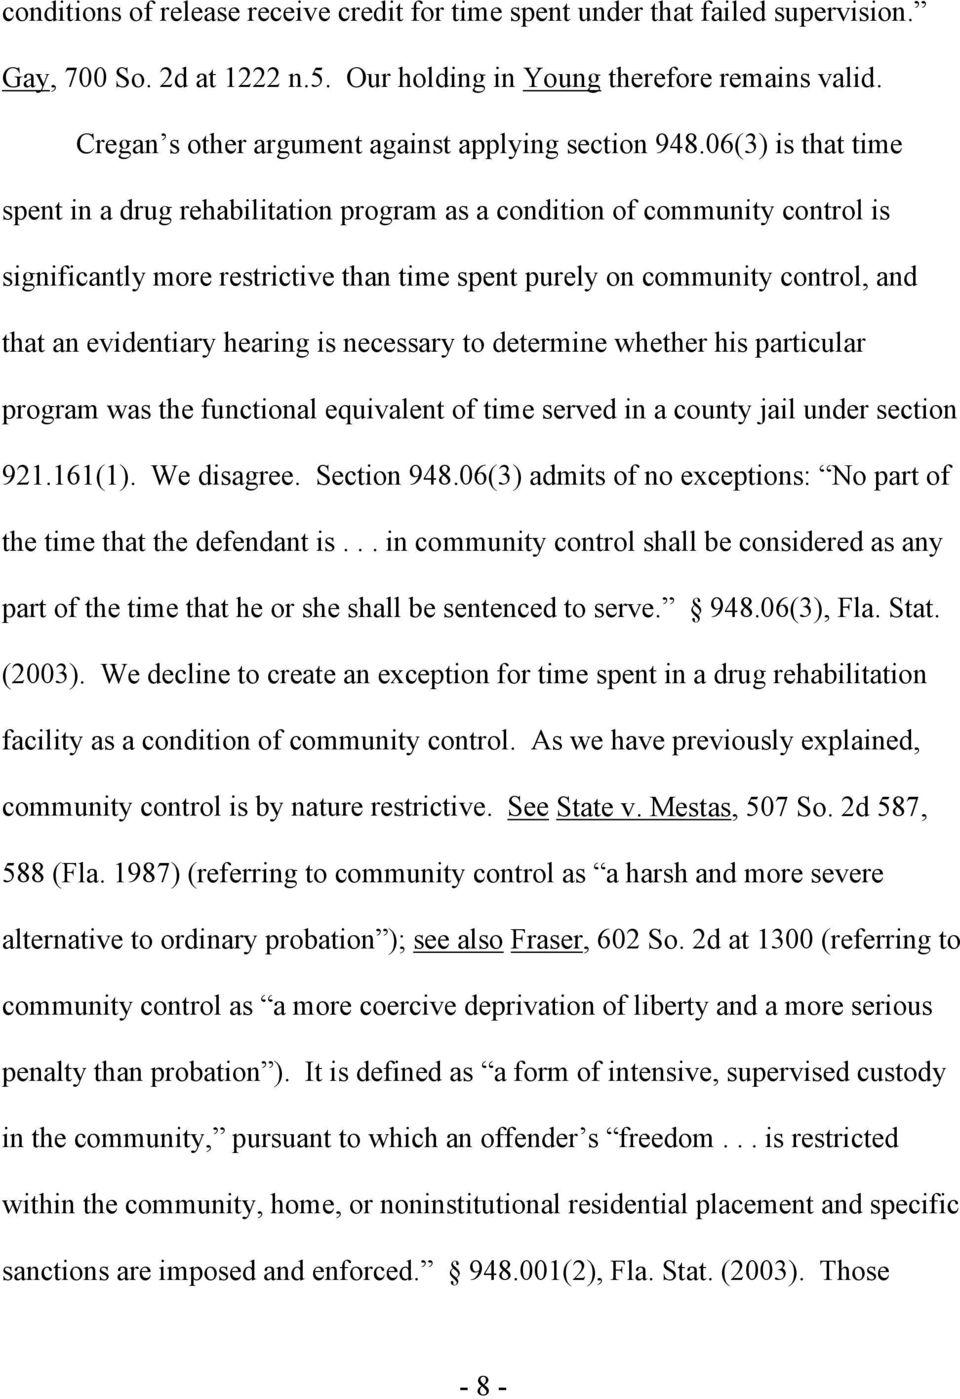 06(3) is that time spent in a drug rehabilitation program as a condition of community control is significantly more restrictive than time spent purely on community control, and that an evidentiary